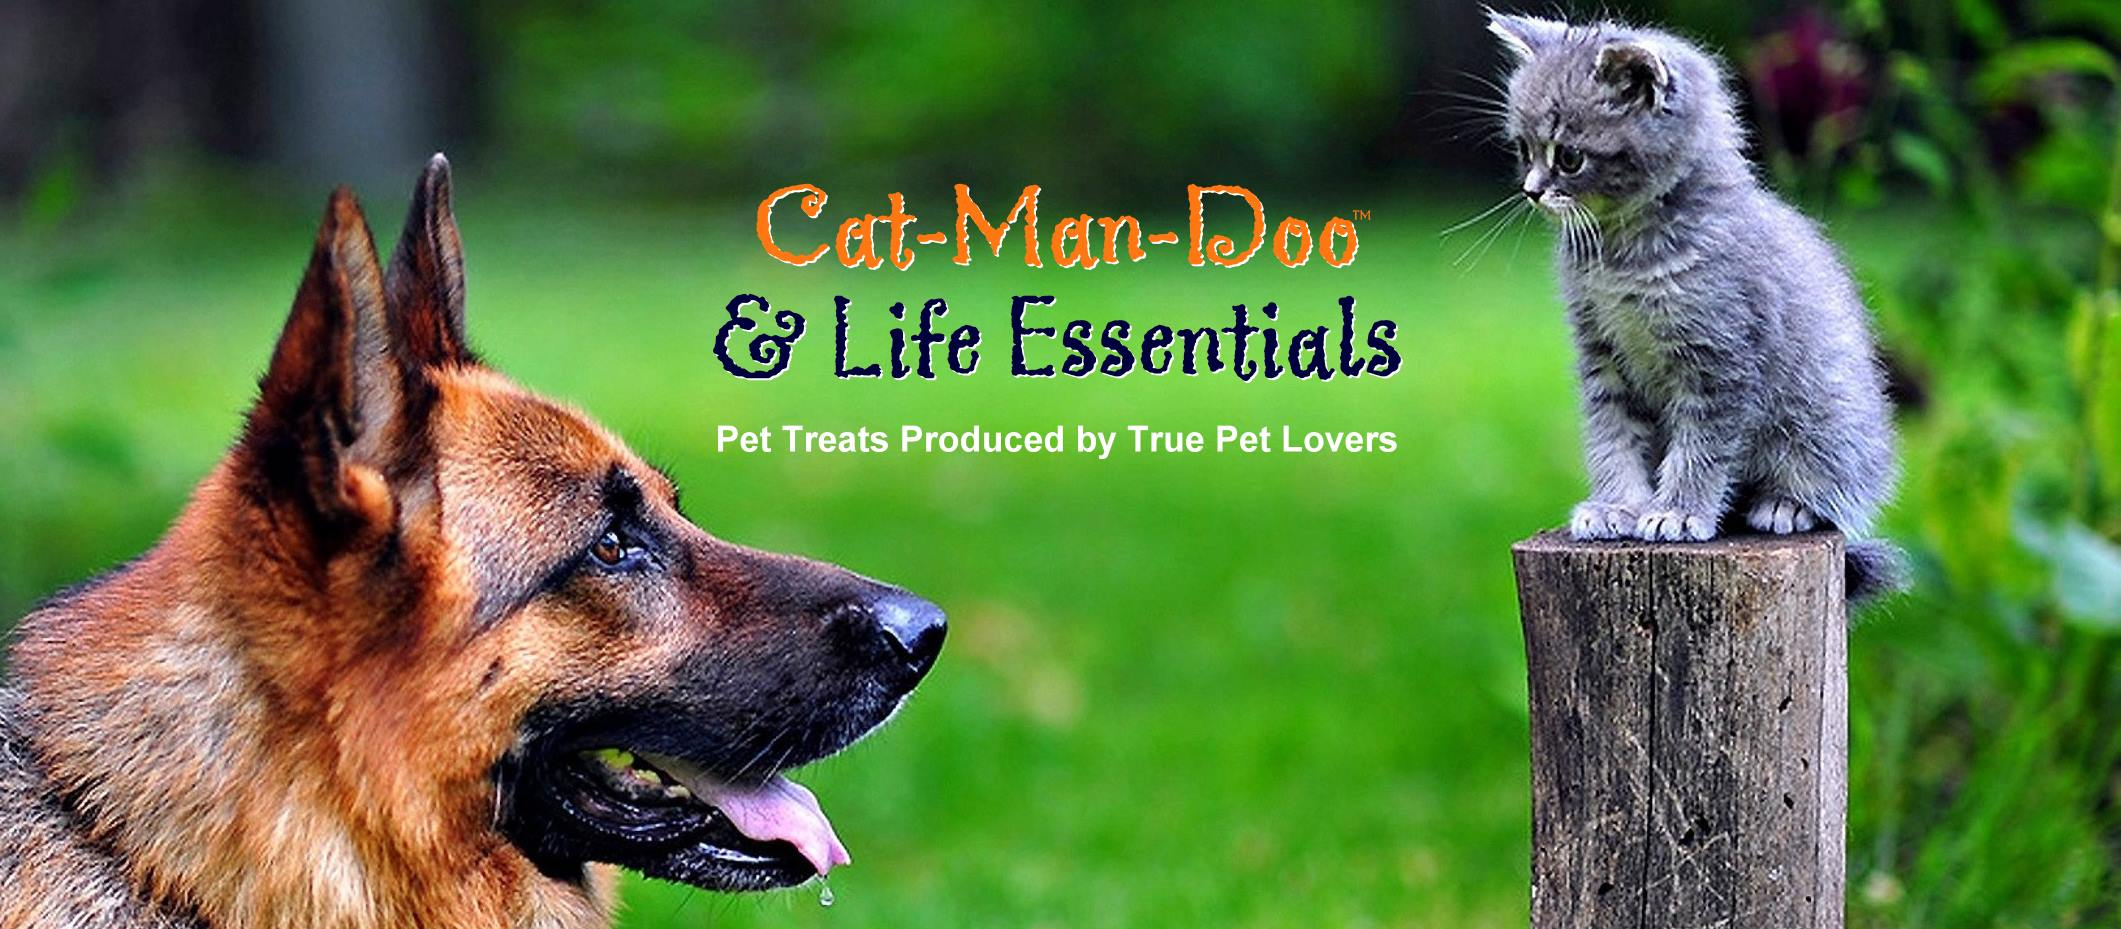 Can-Man-Doo treats for dogs and cats